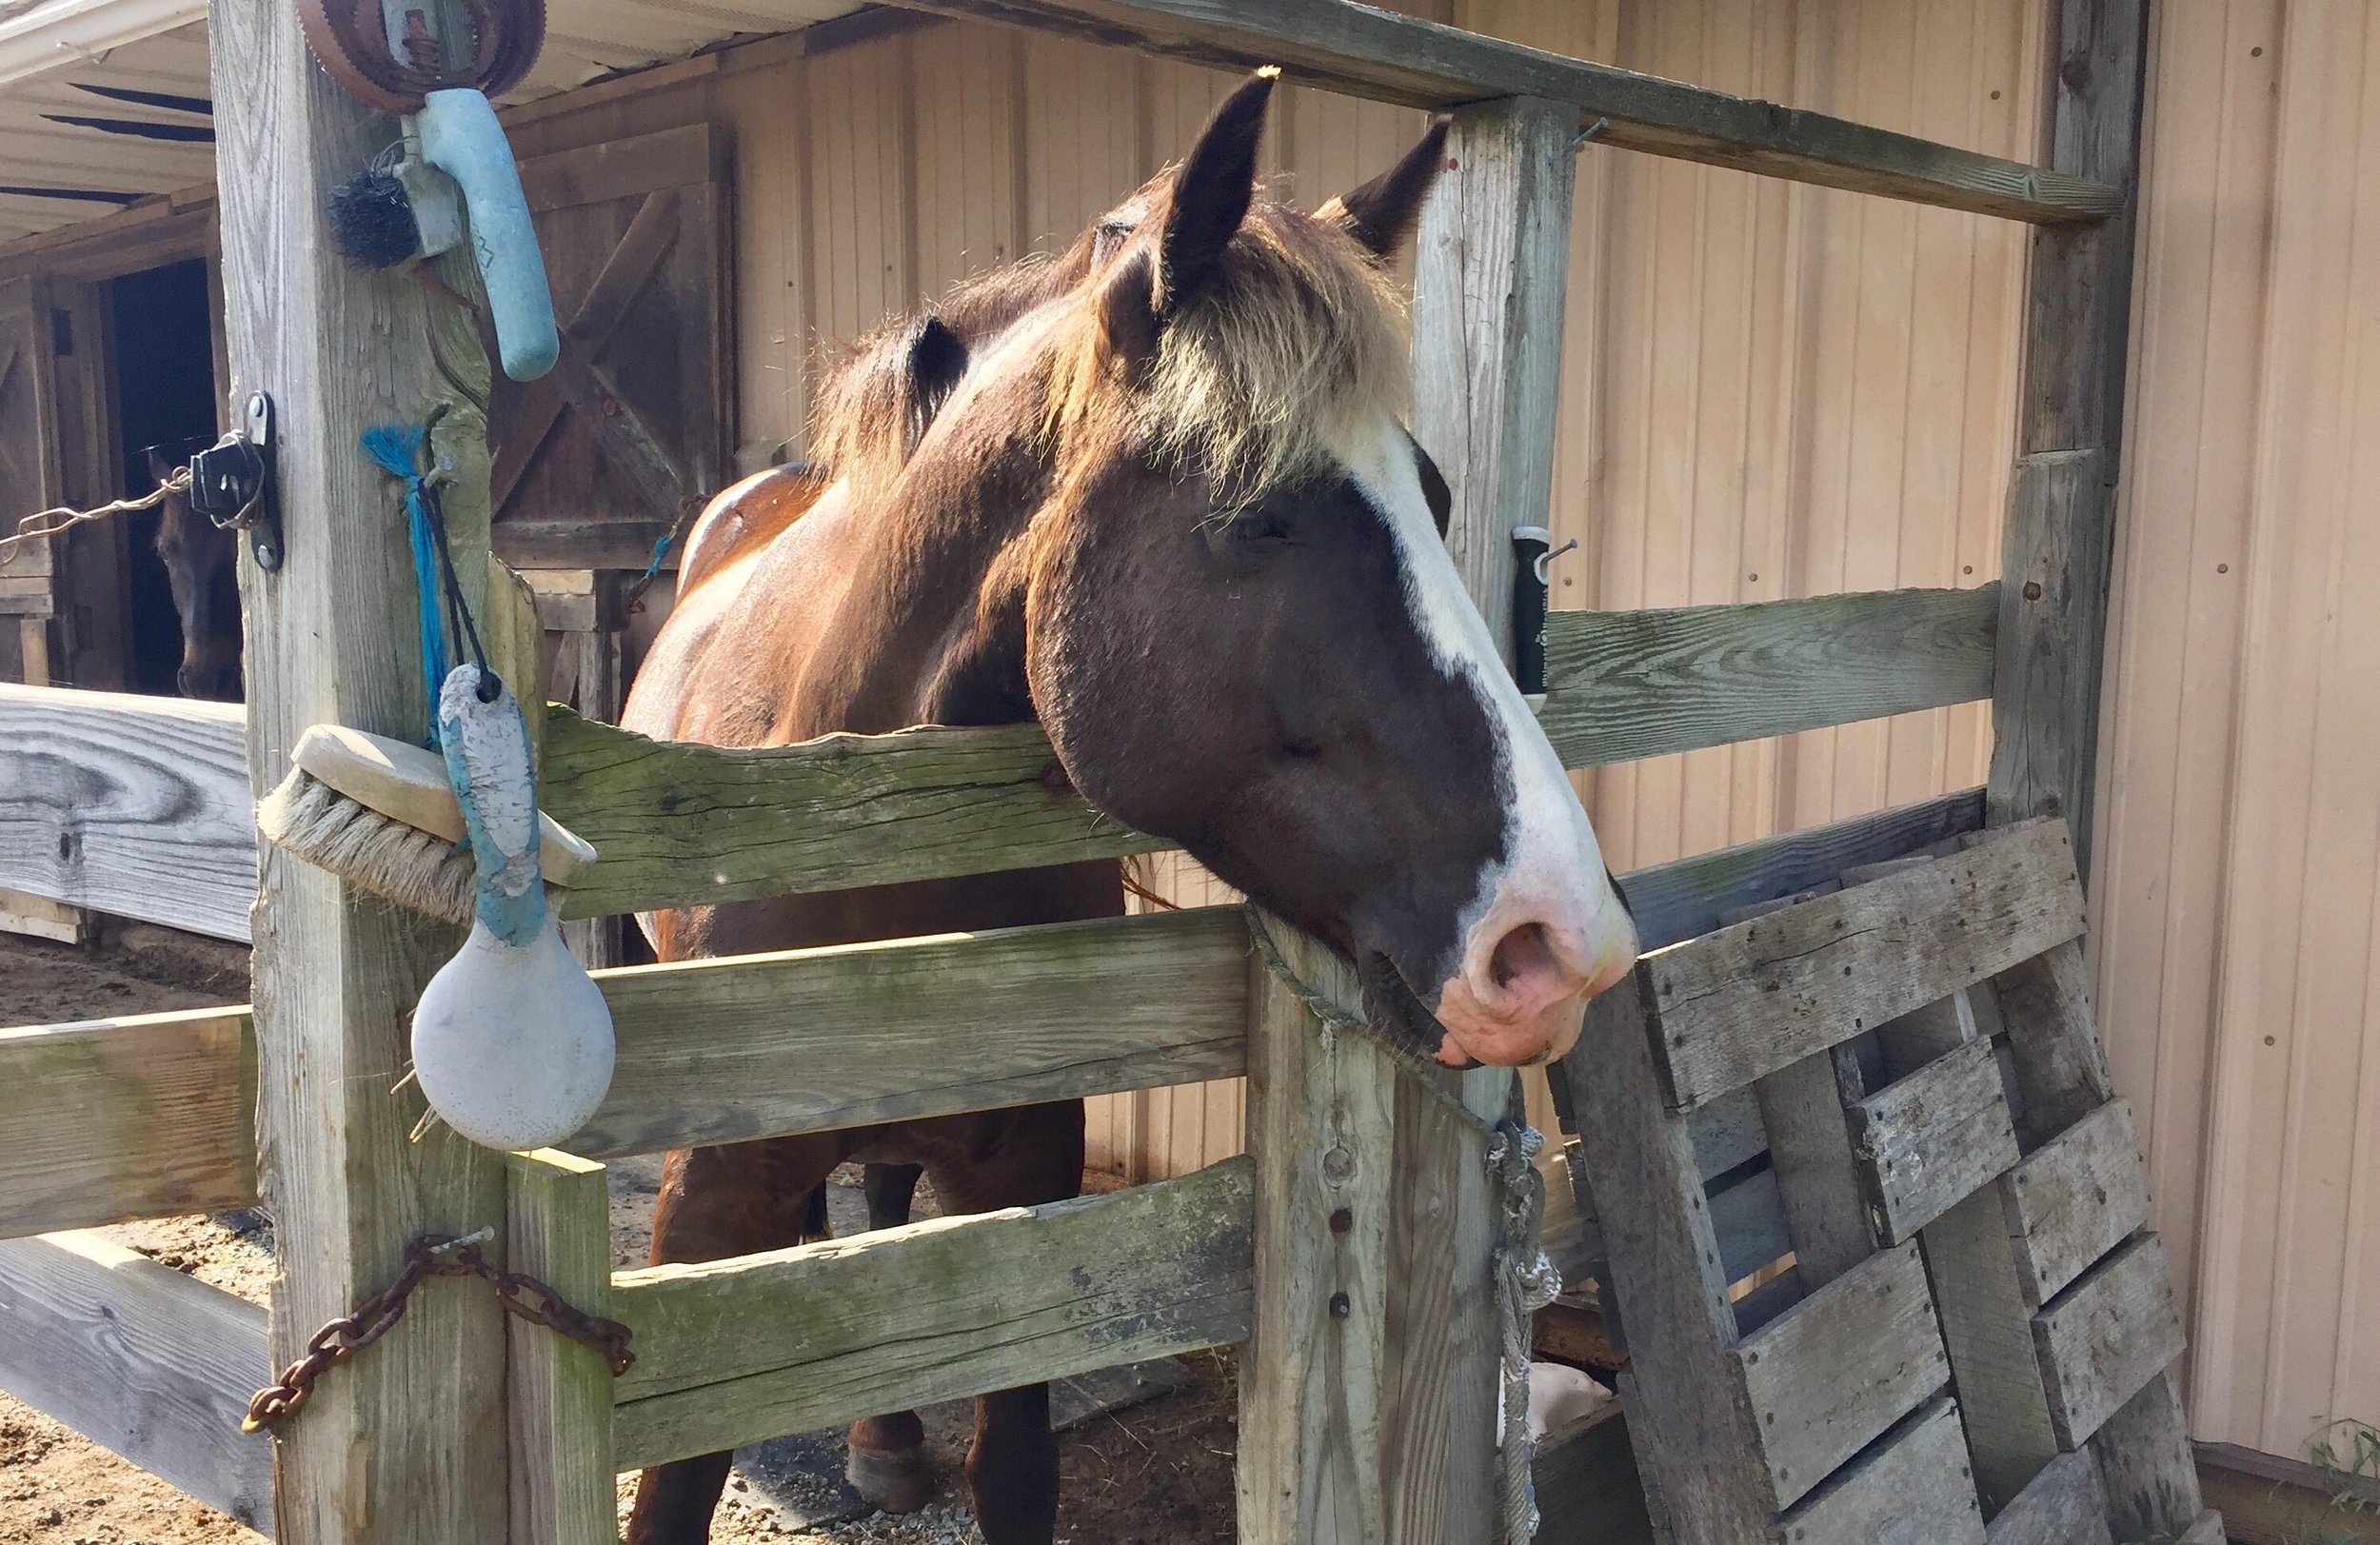 Misty and 3 other horses are part of the family.